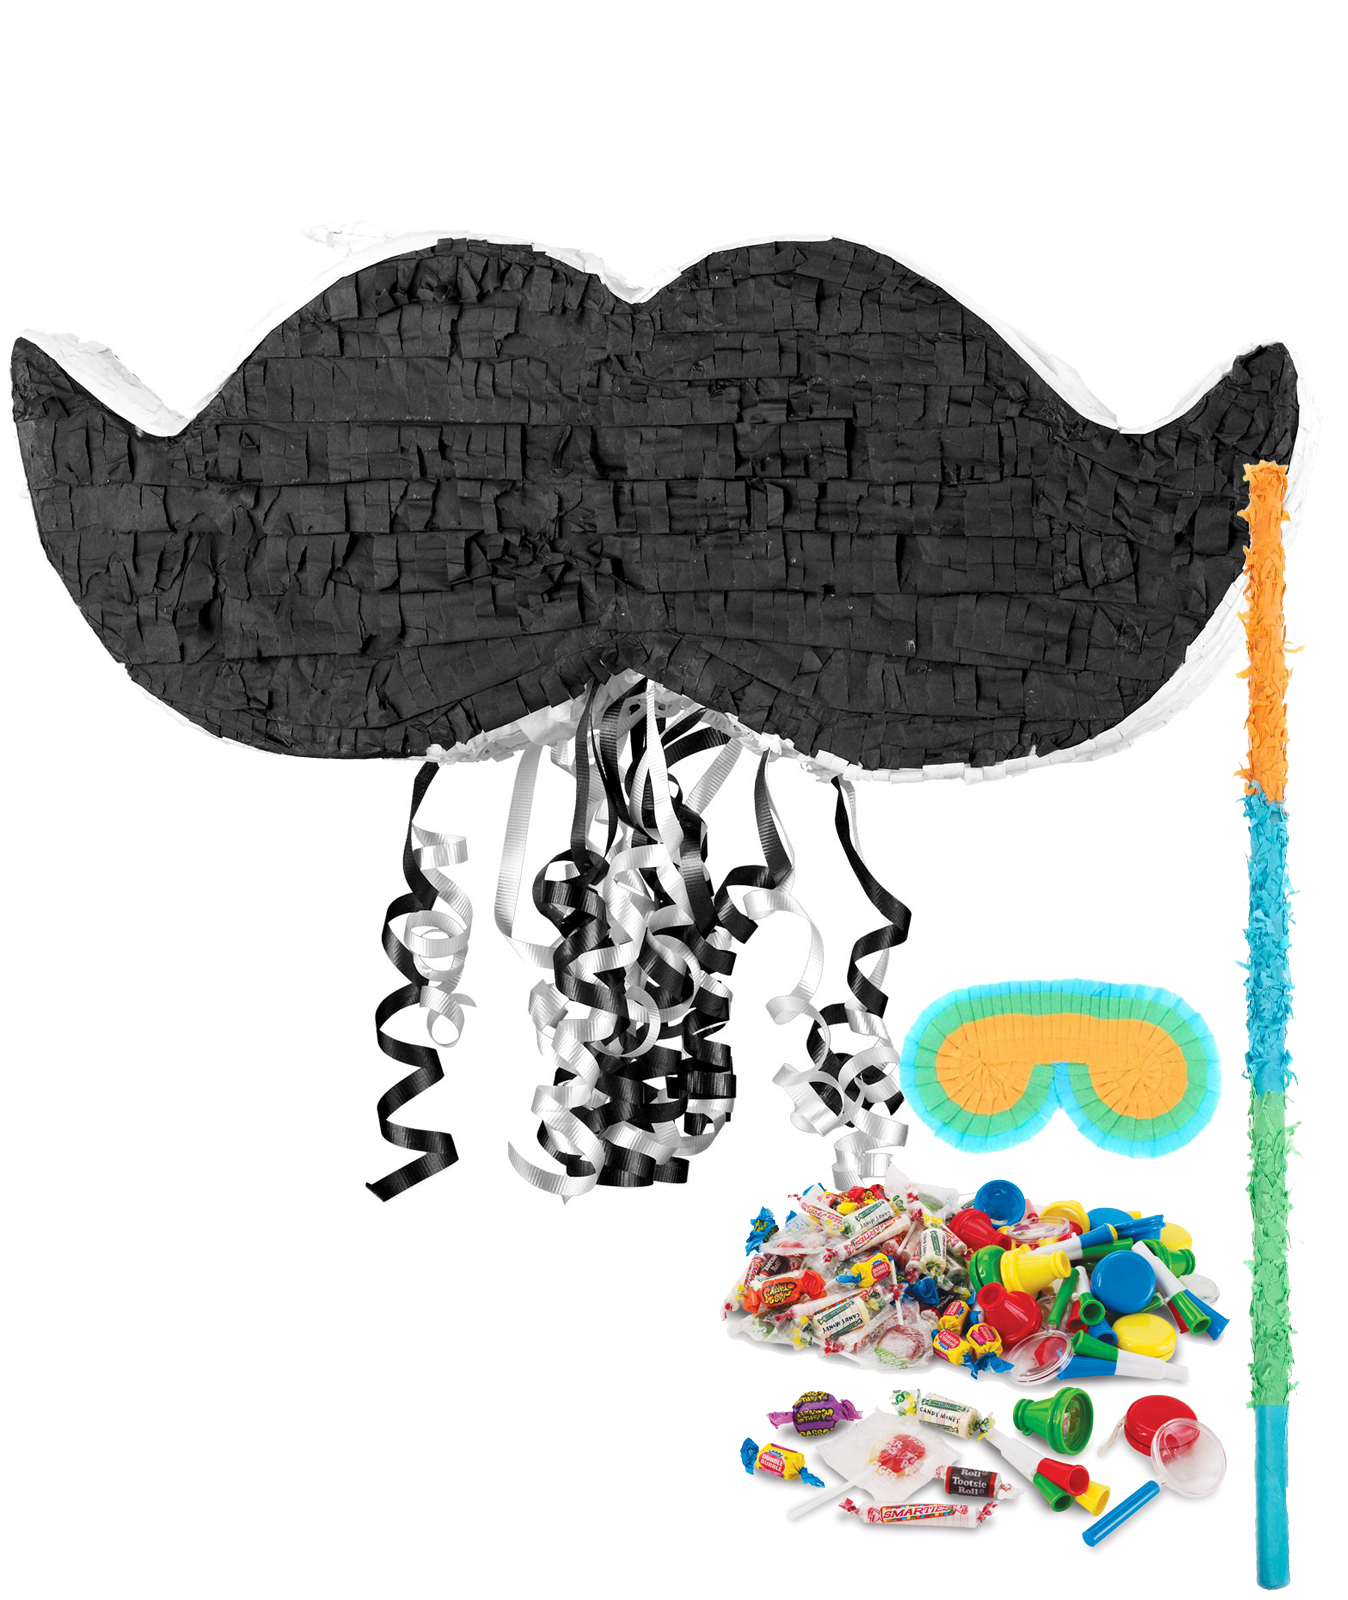 Mustache Party Invitations - sndclsh.Com